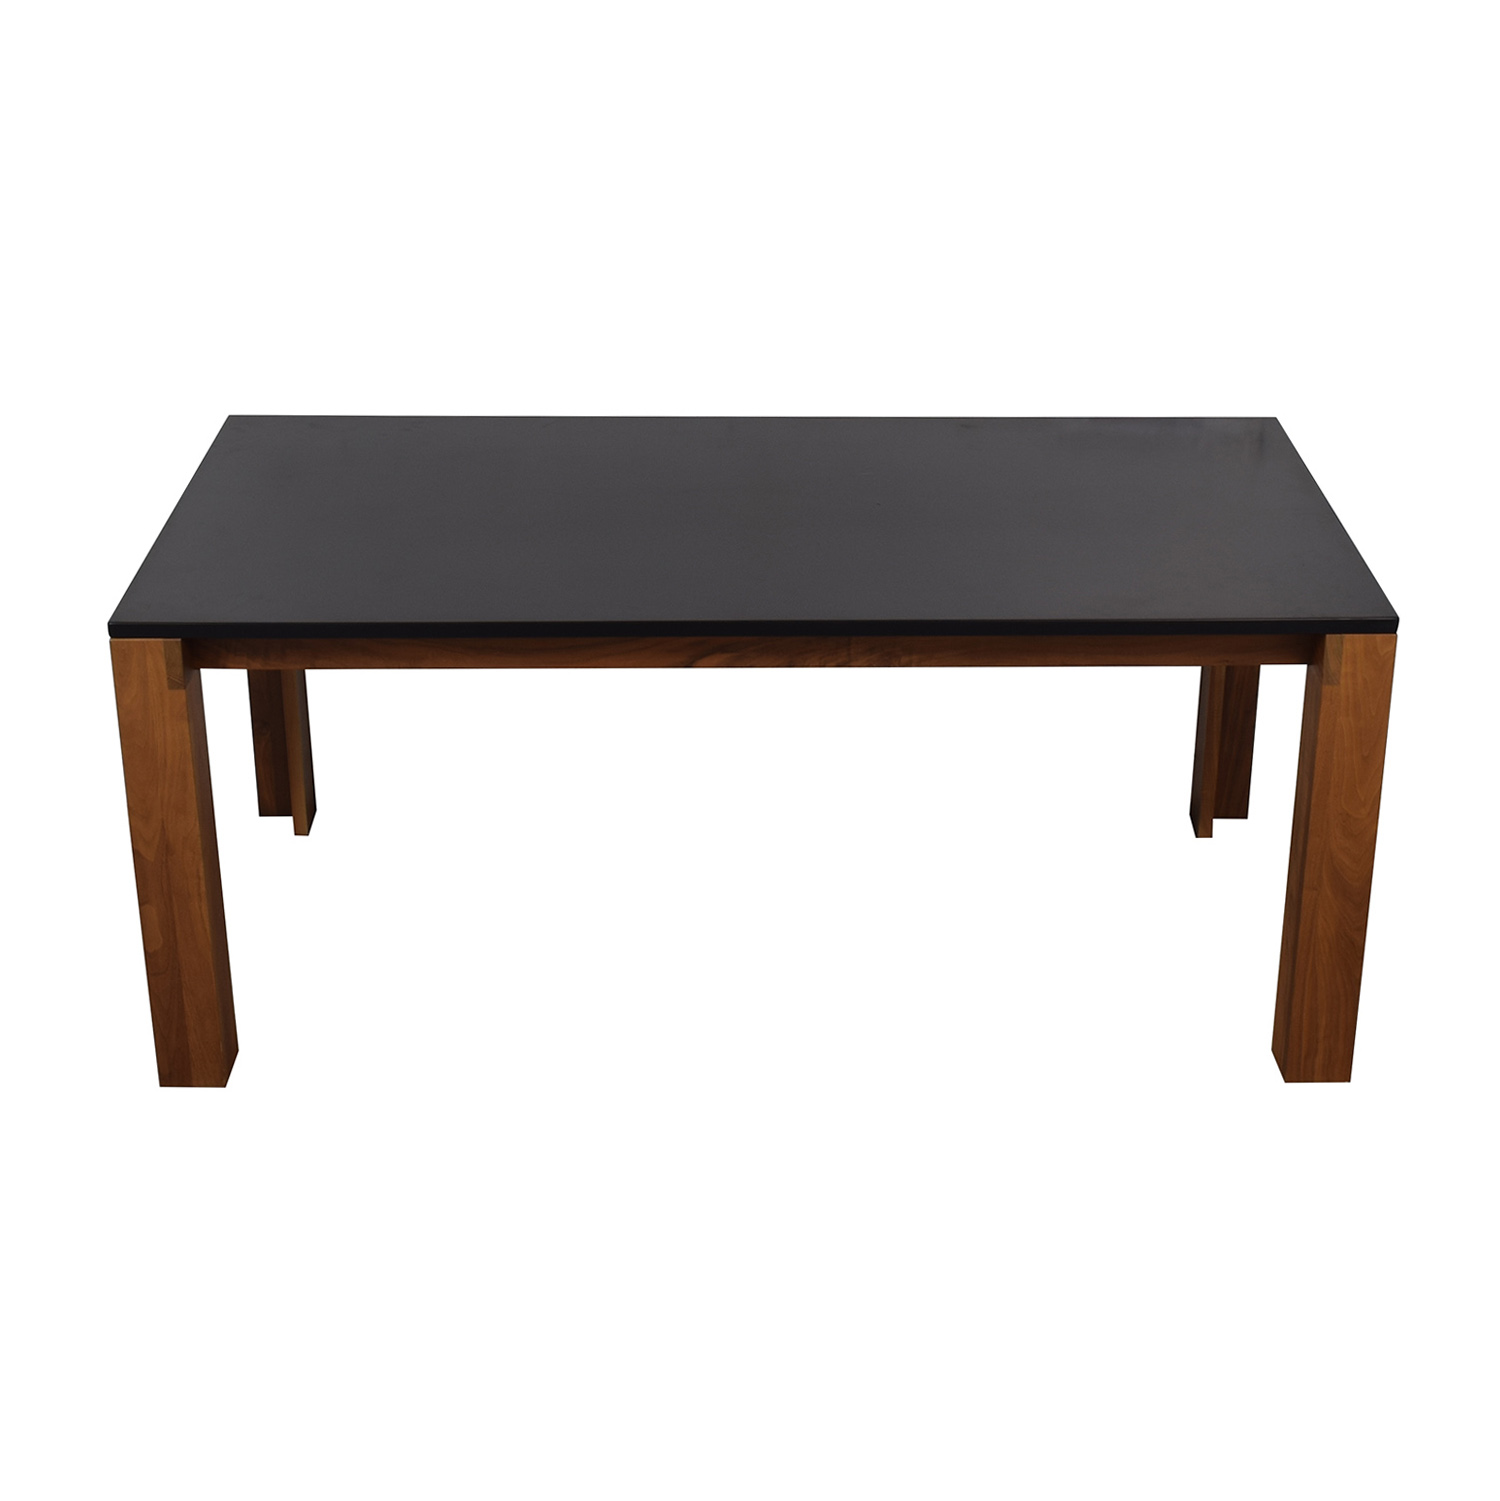 buy Design Within Reach Black and Wood Dining Table Design Within Reach Tables